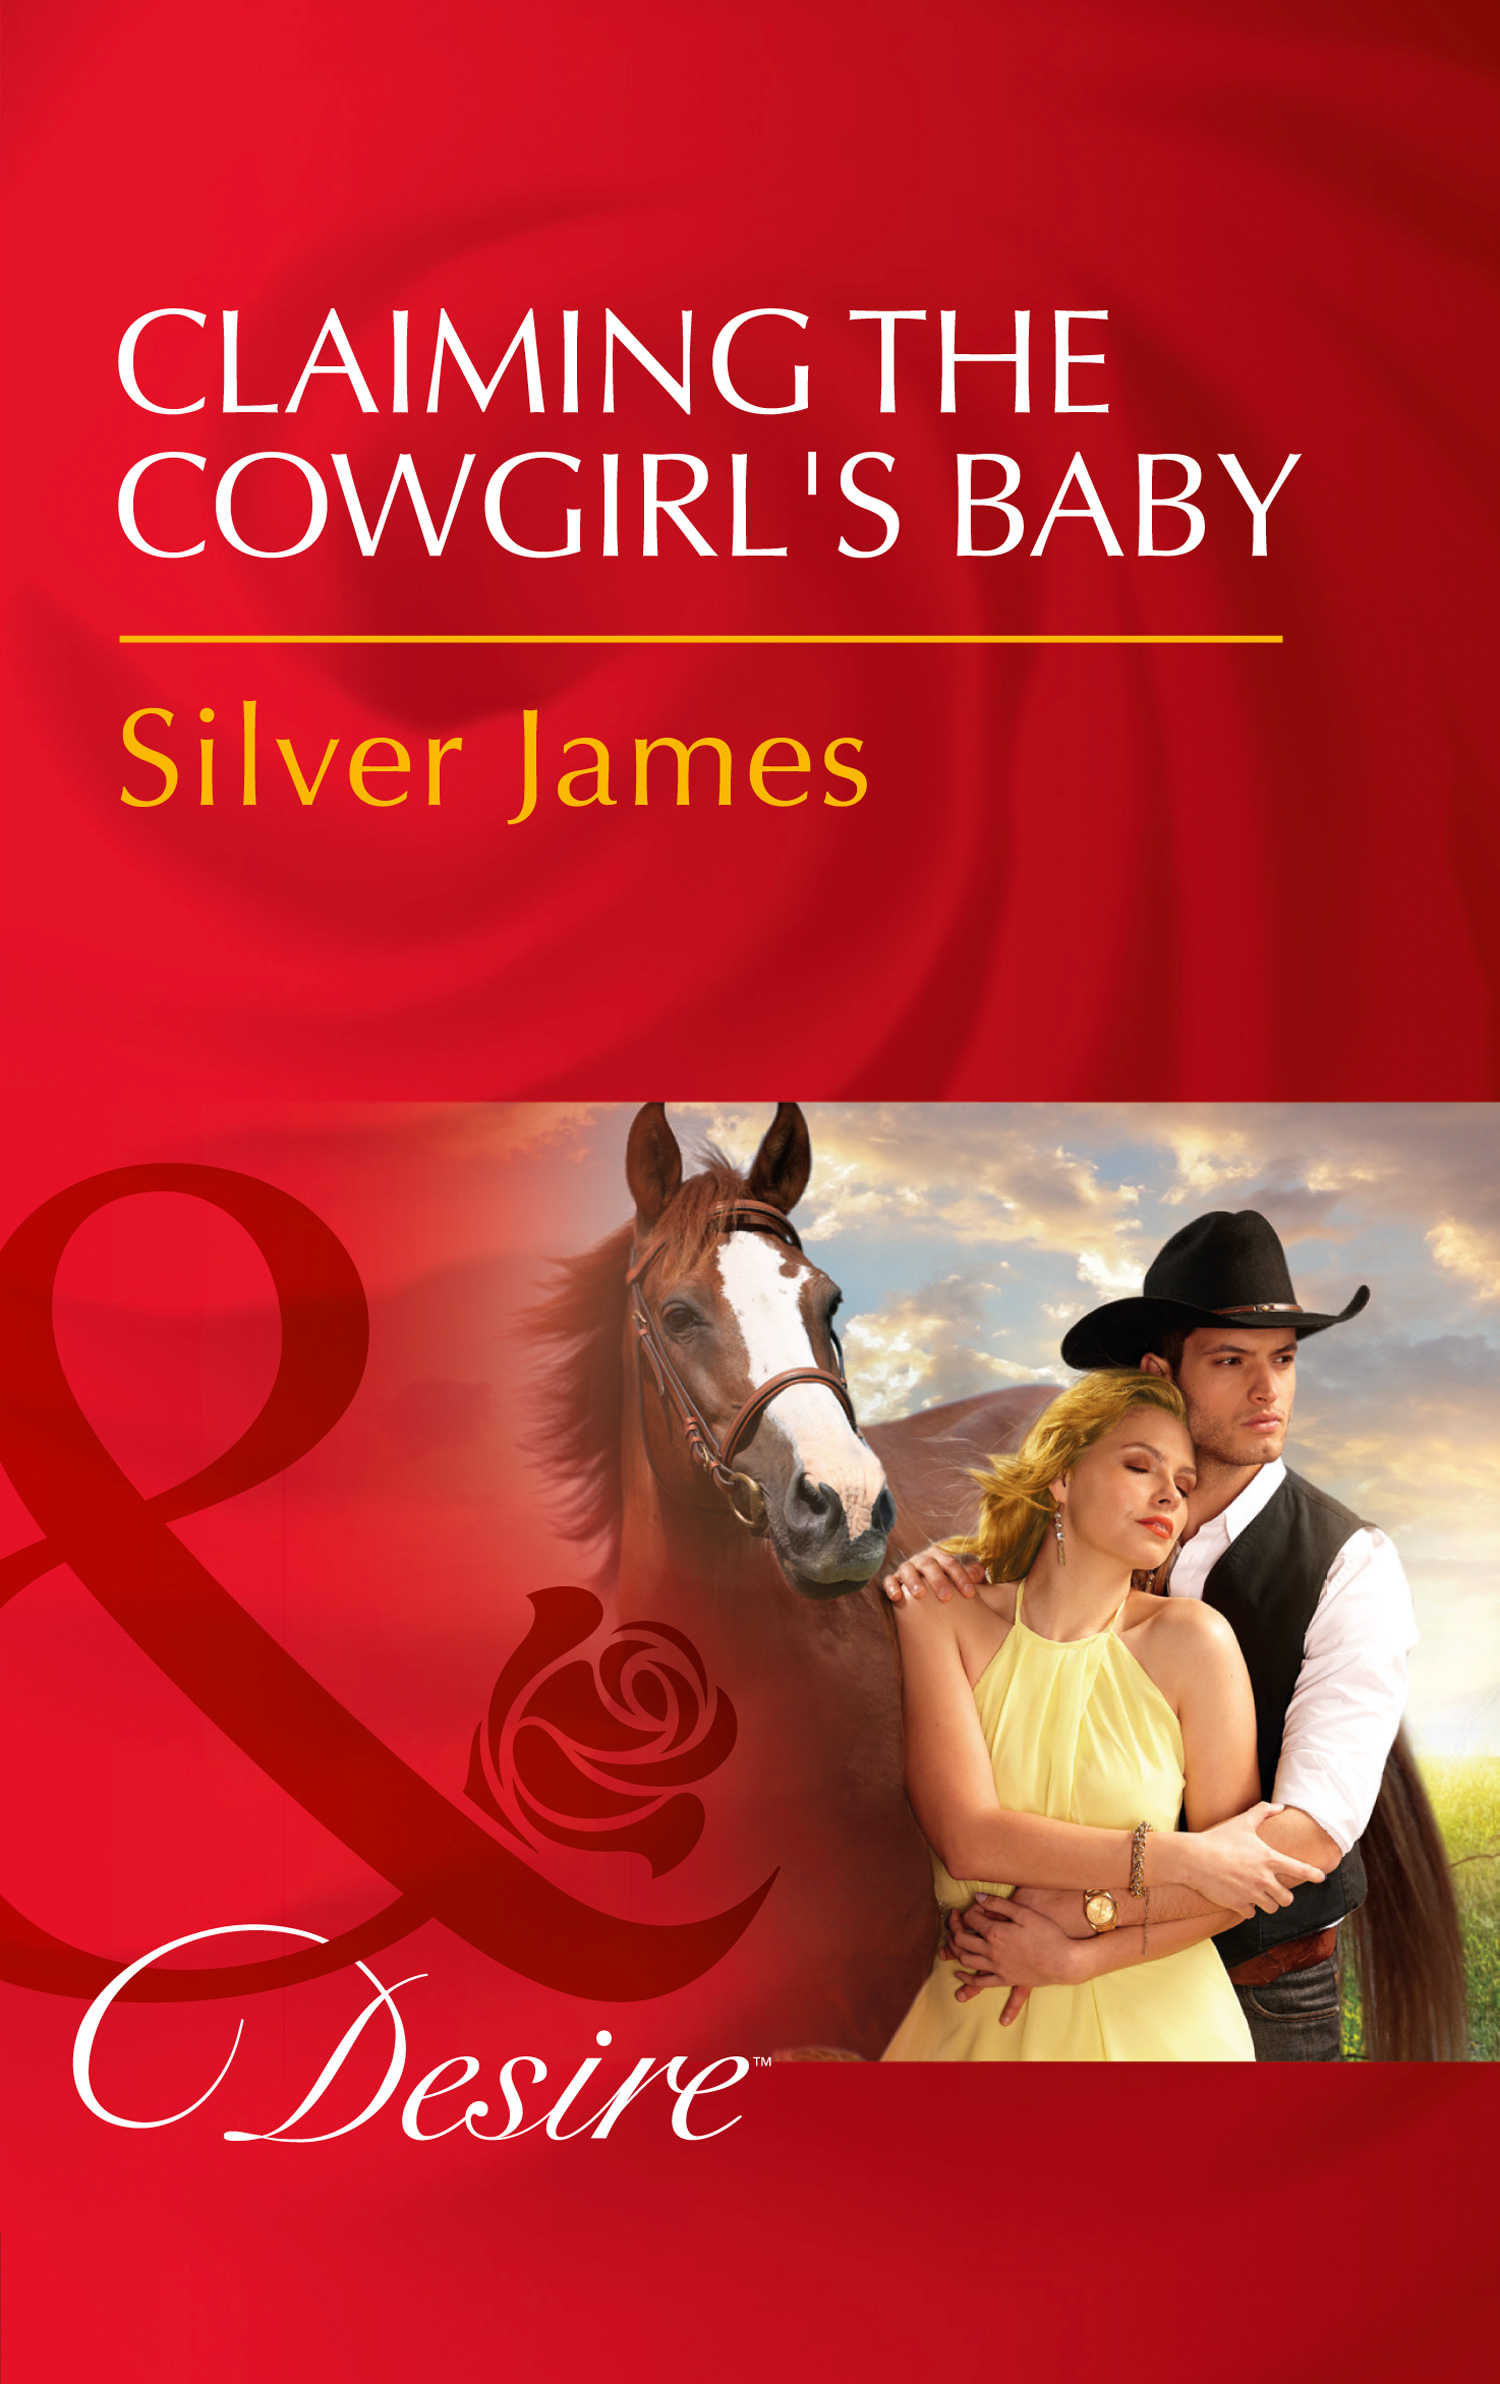 Claiming The Cowgirl's Baby